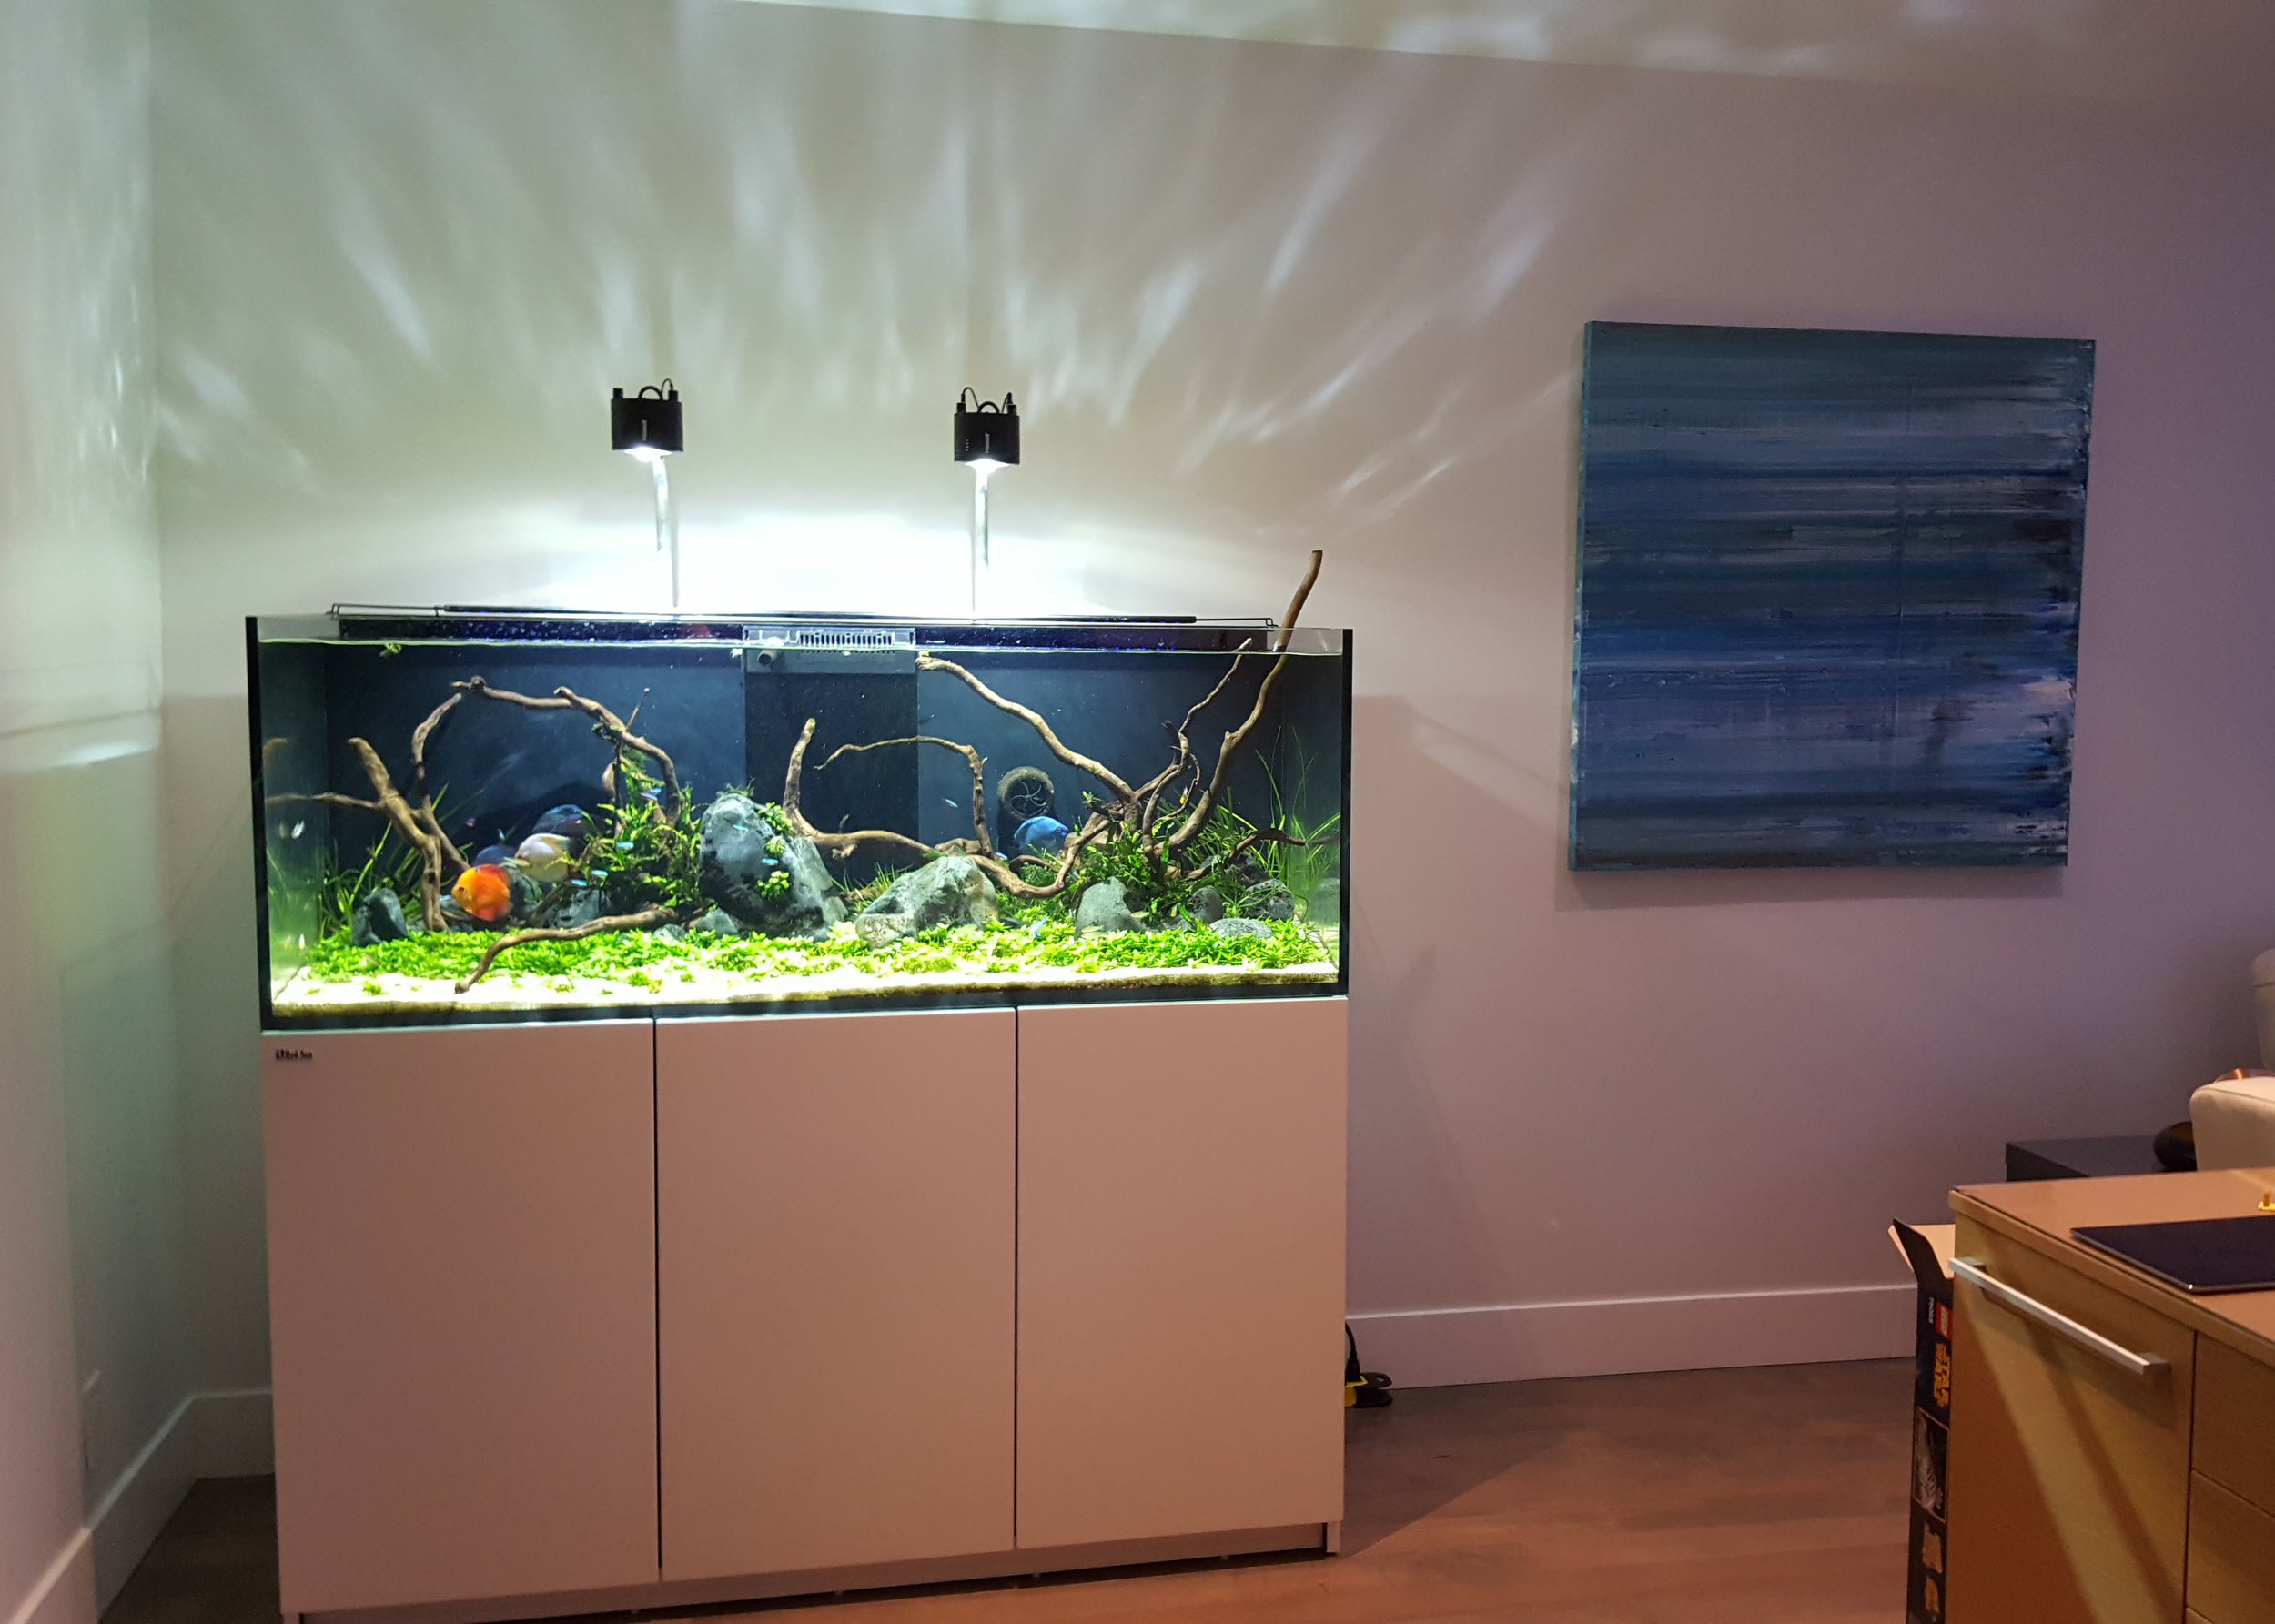 Aquascaping - I design luxury freshwater aquarium systems. Everything you see is alive, dynamic, and every small detail has its purpose.